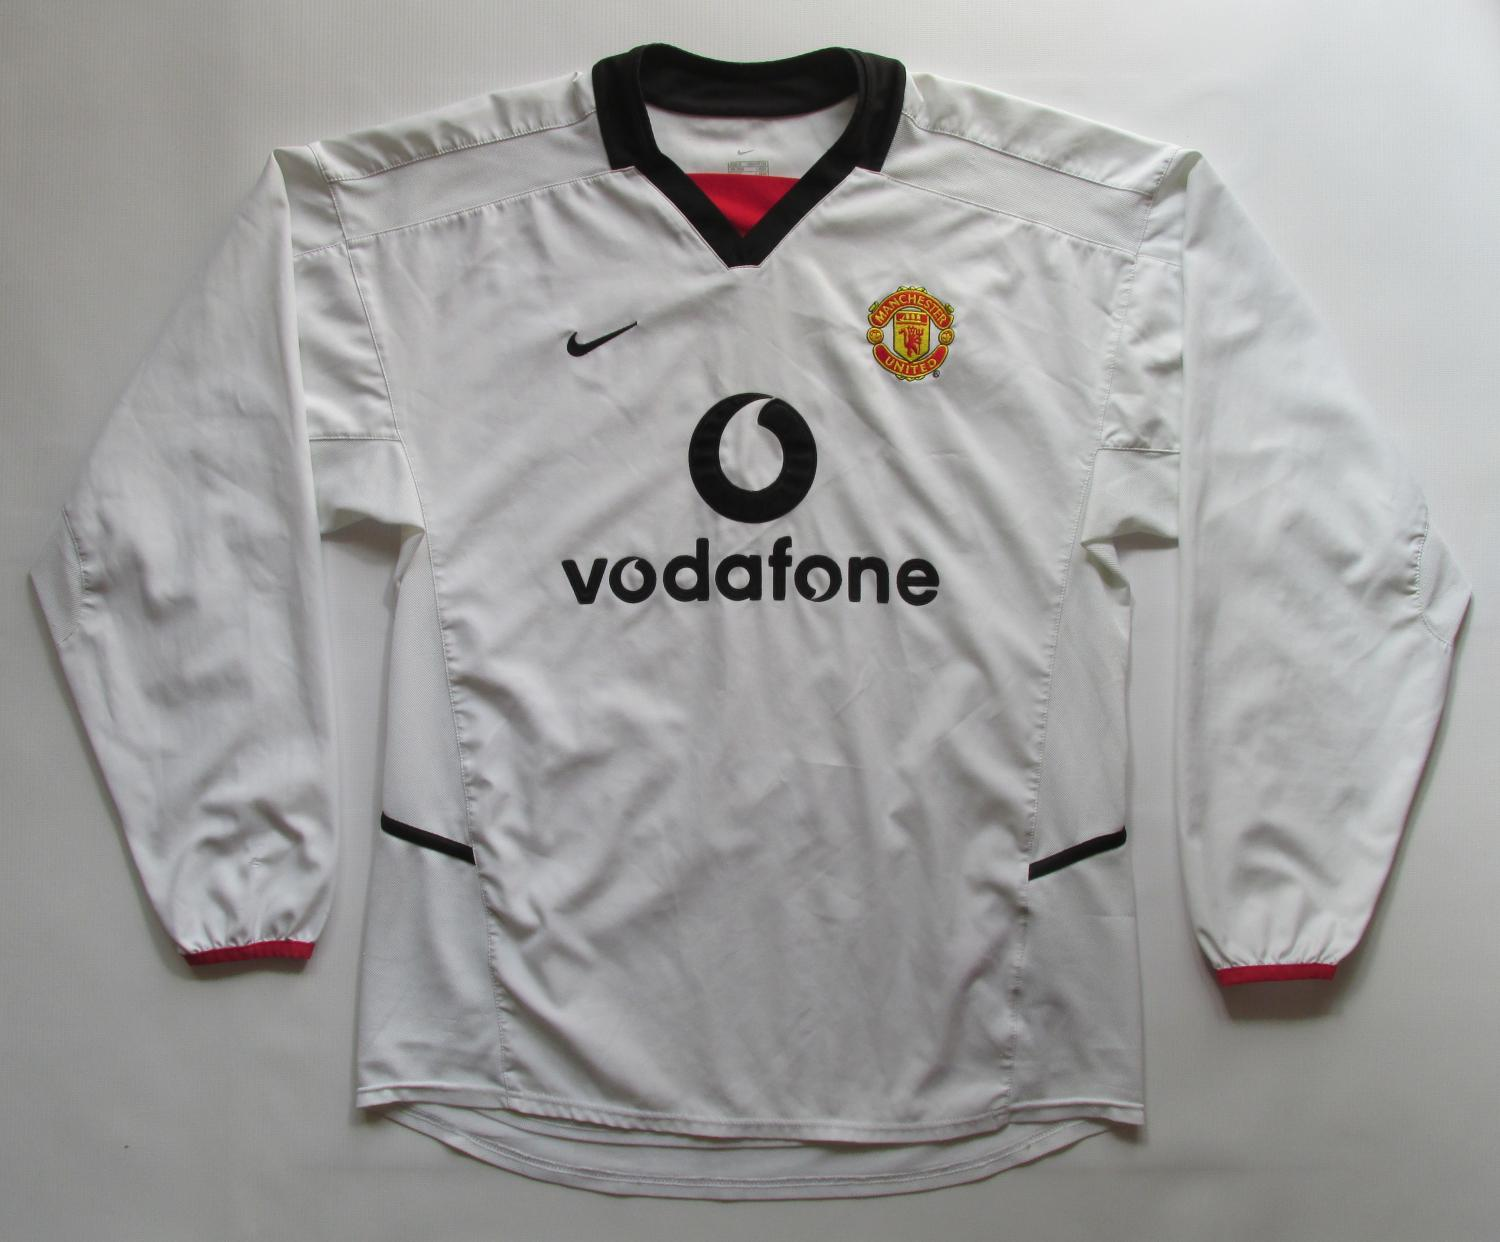 newest 8d9f0 7acbe Manchester United Away football shirt 2002 - 2003. Sponsored ...